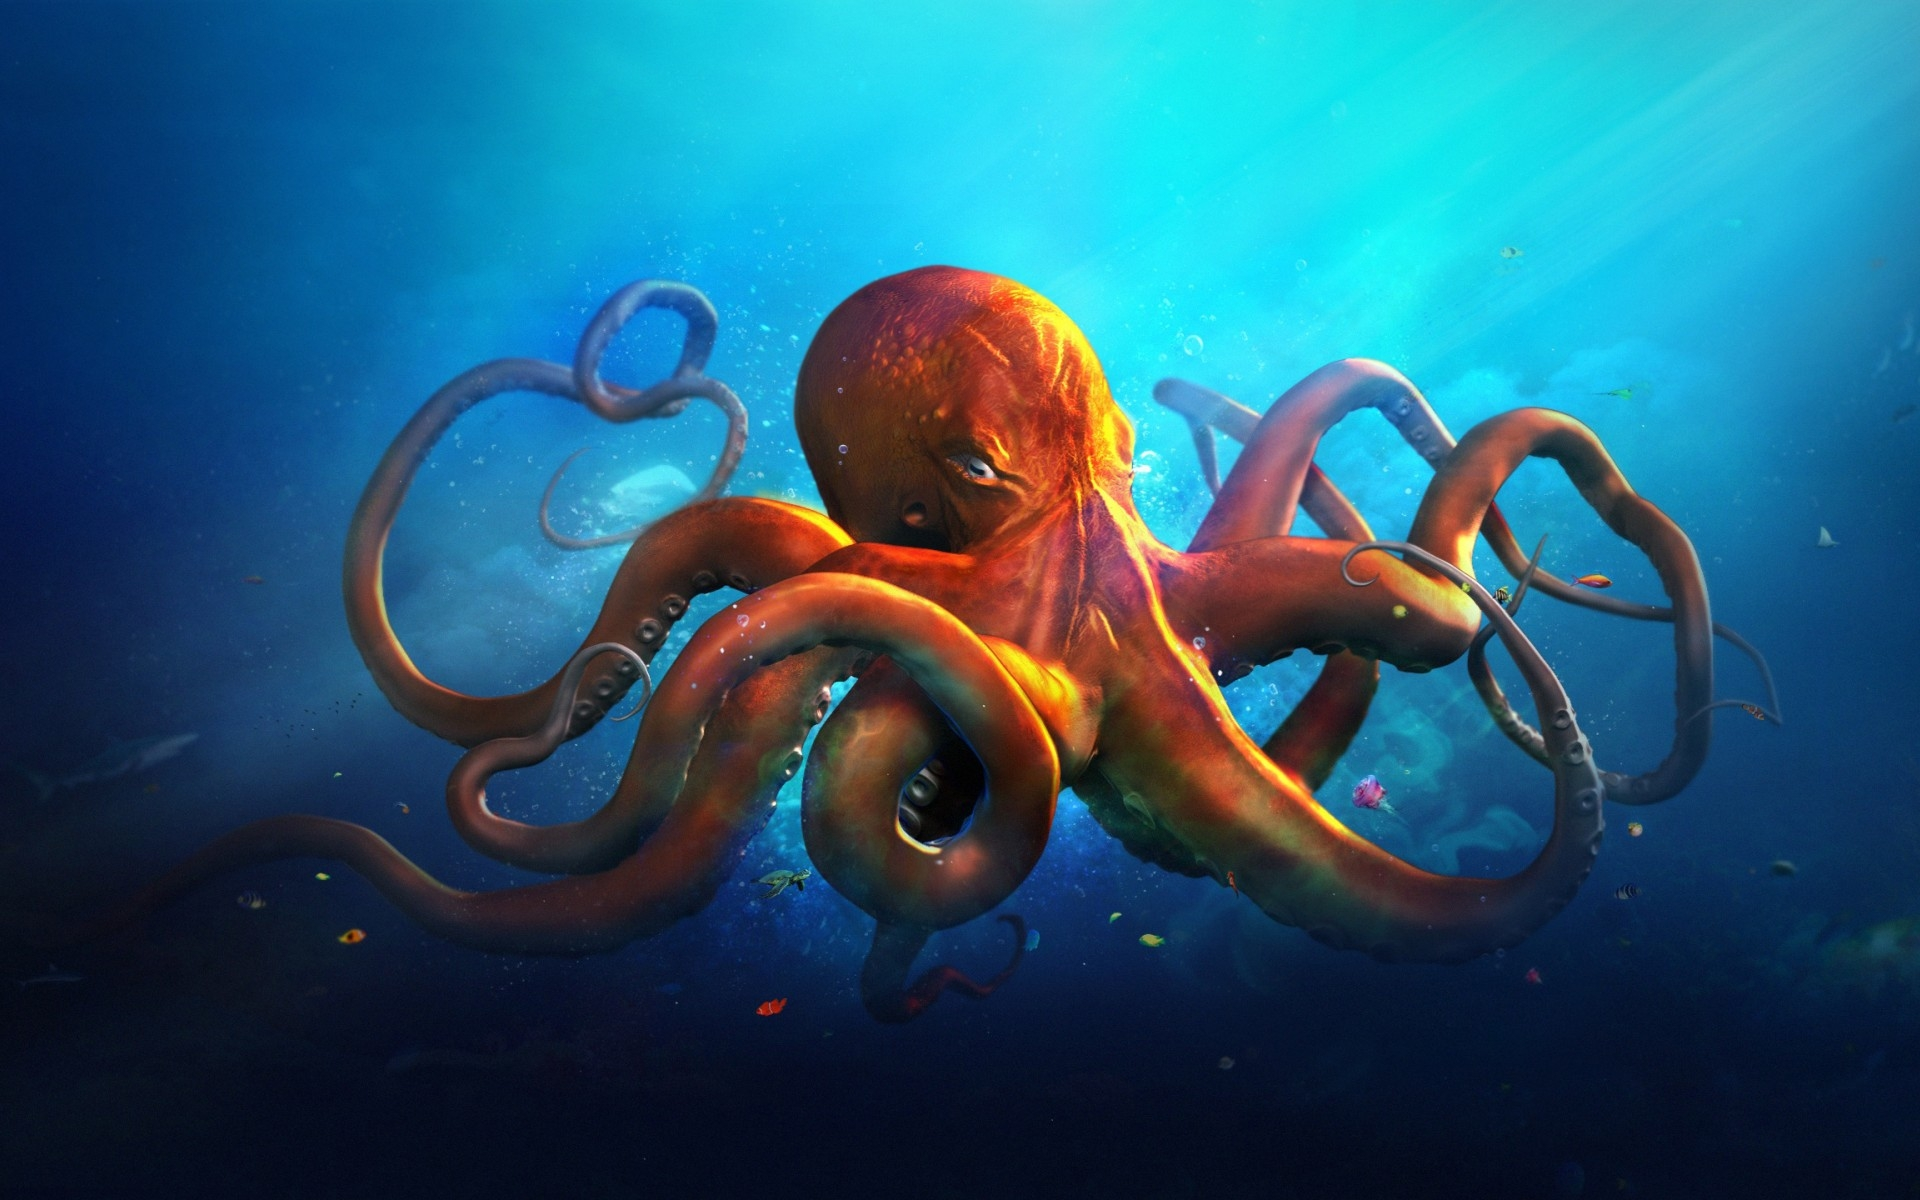 Octopus wallpaper | 1920x1200 | #57619 on bristle worm home, rabbit home, fish home, turtle home, lizard home, frog home, cuttlefish home, duck home, giraffe home, dubai home, caterpillar home, dragon home, squid home, wolf home,